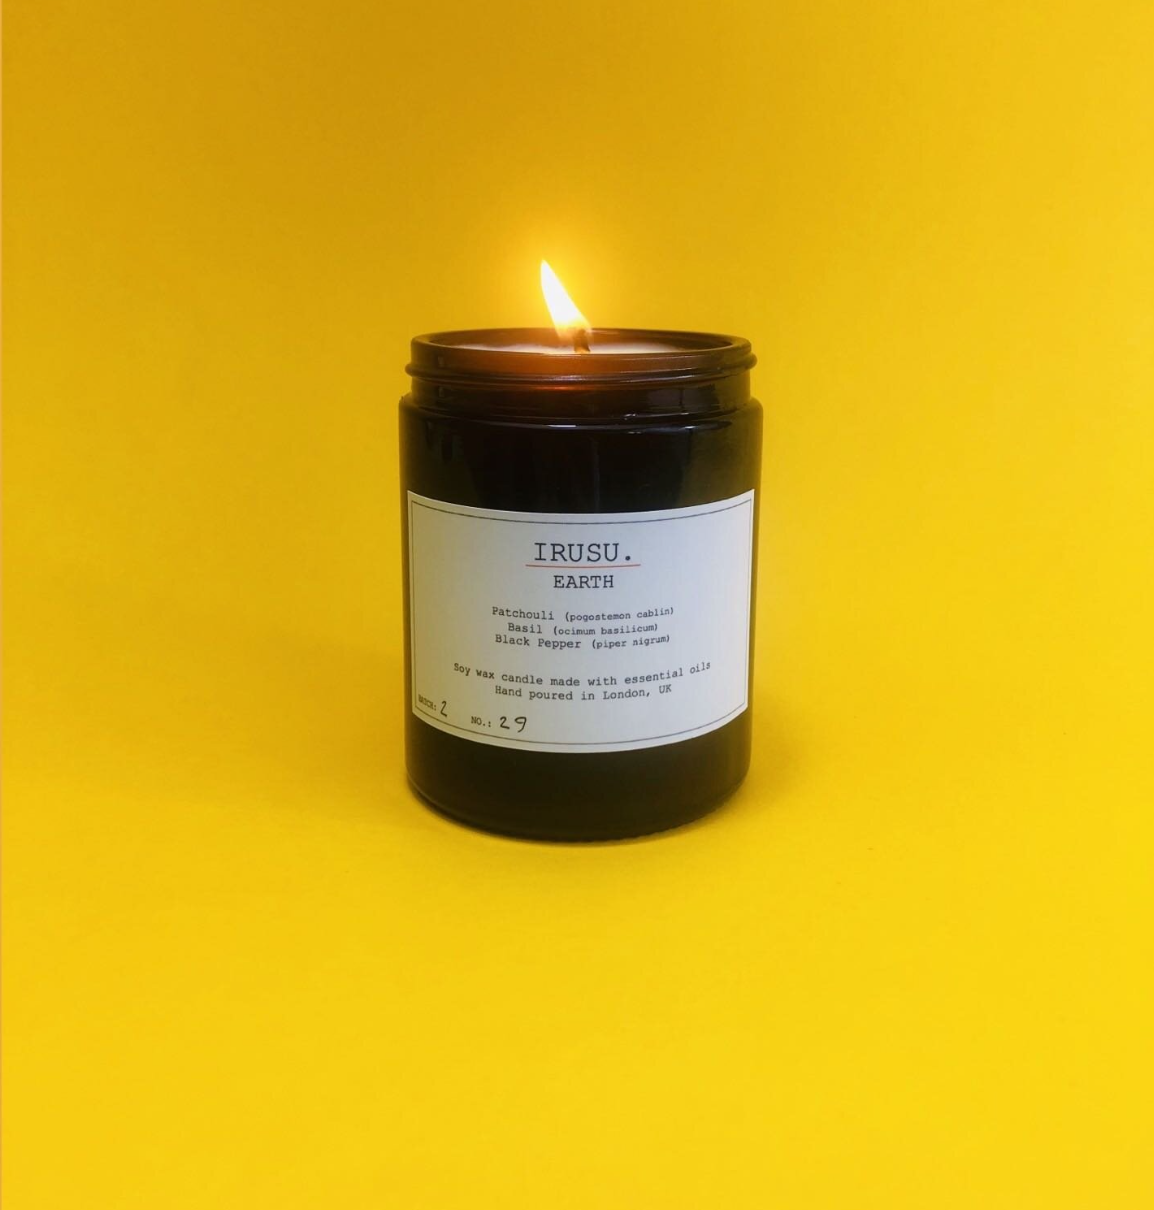 North London based Irusu candles are super eco and vegan friendly